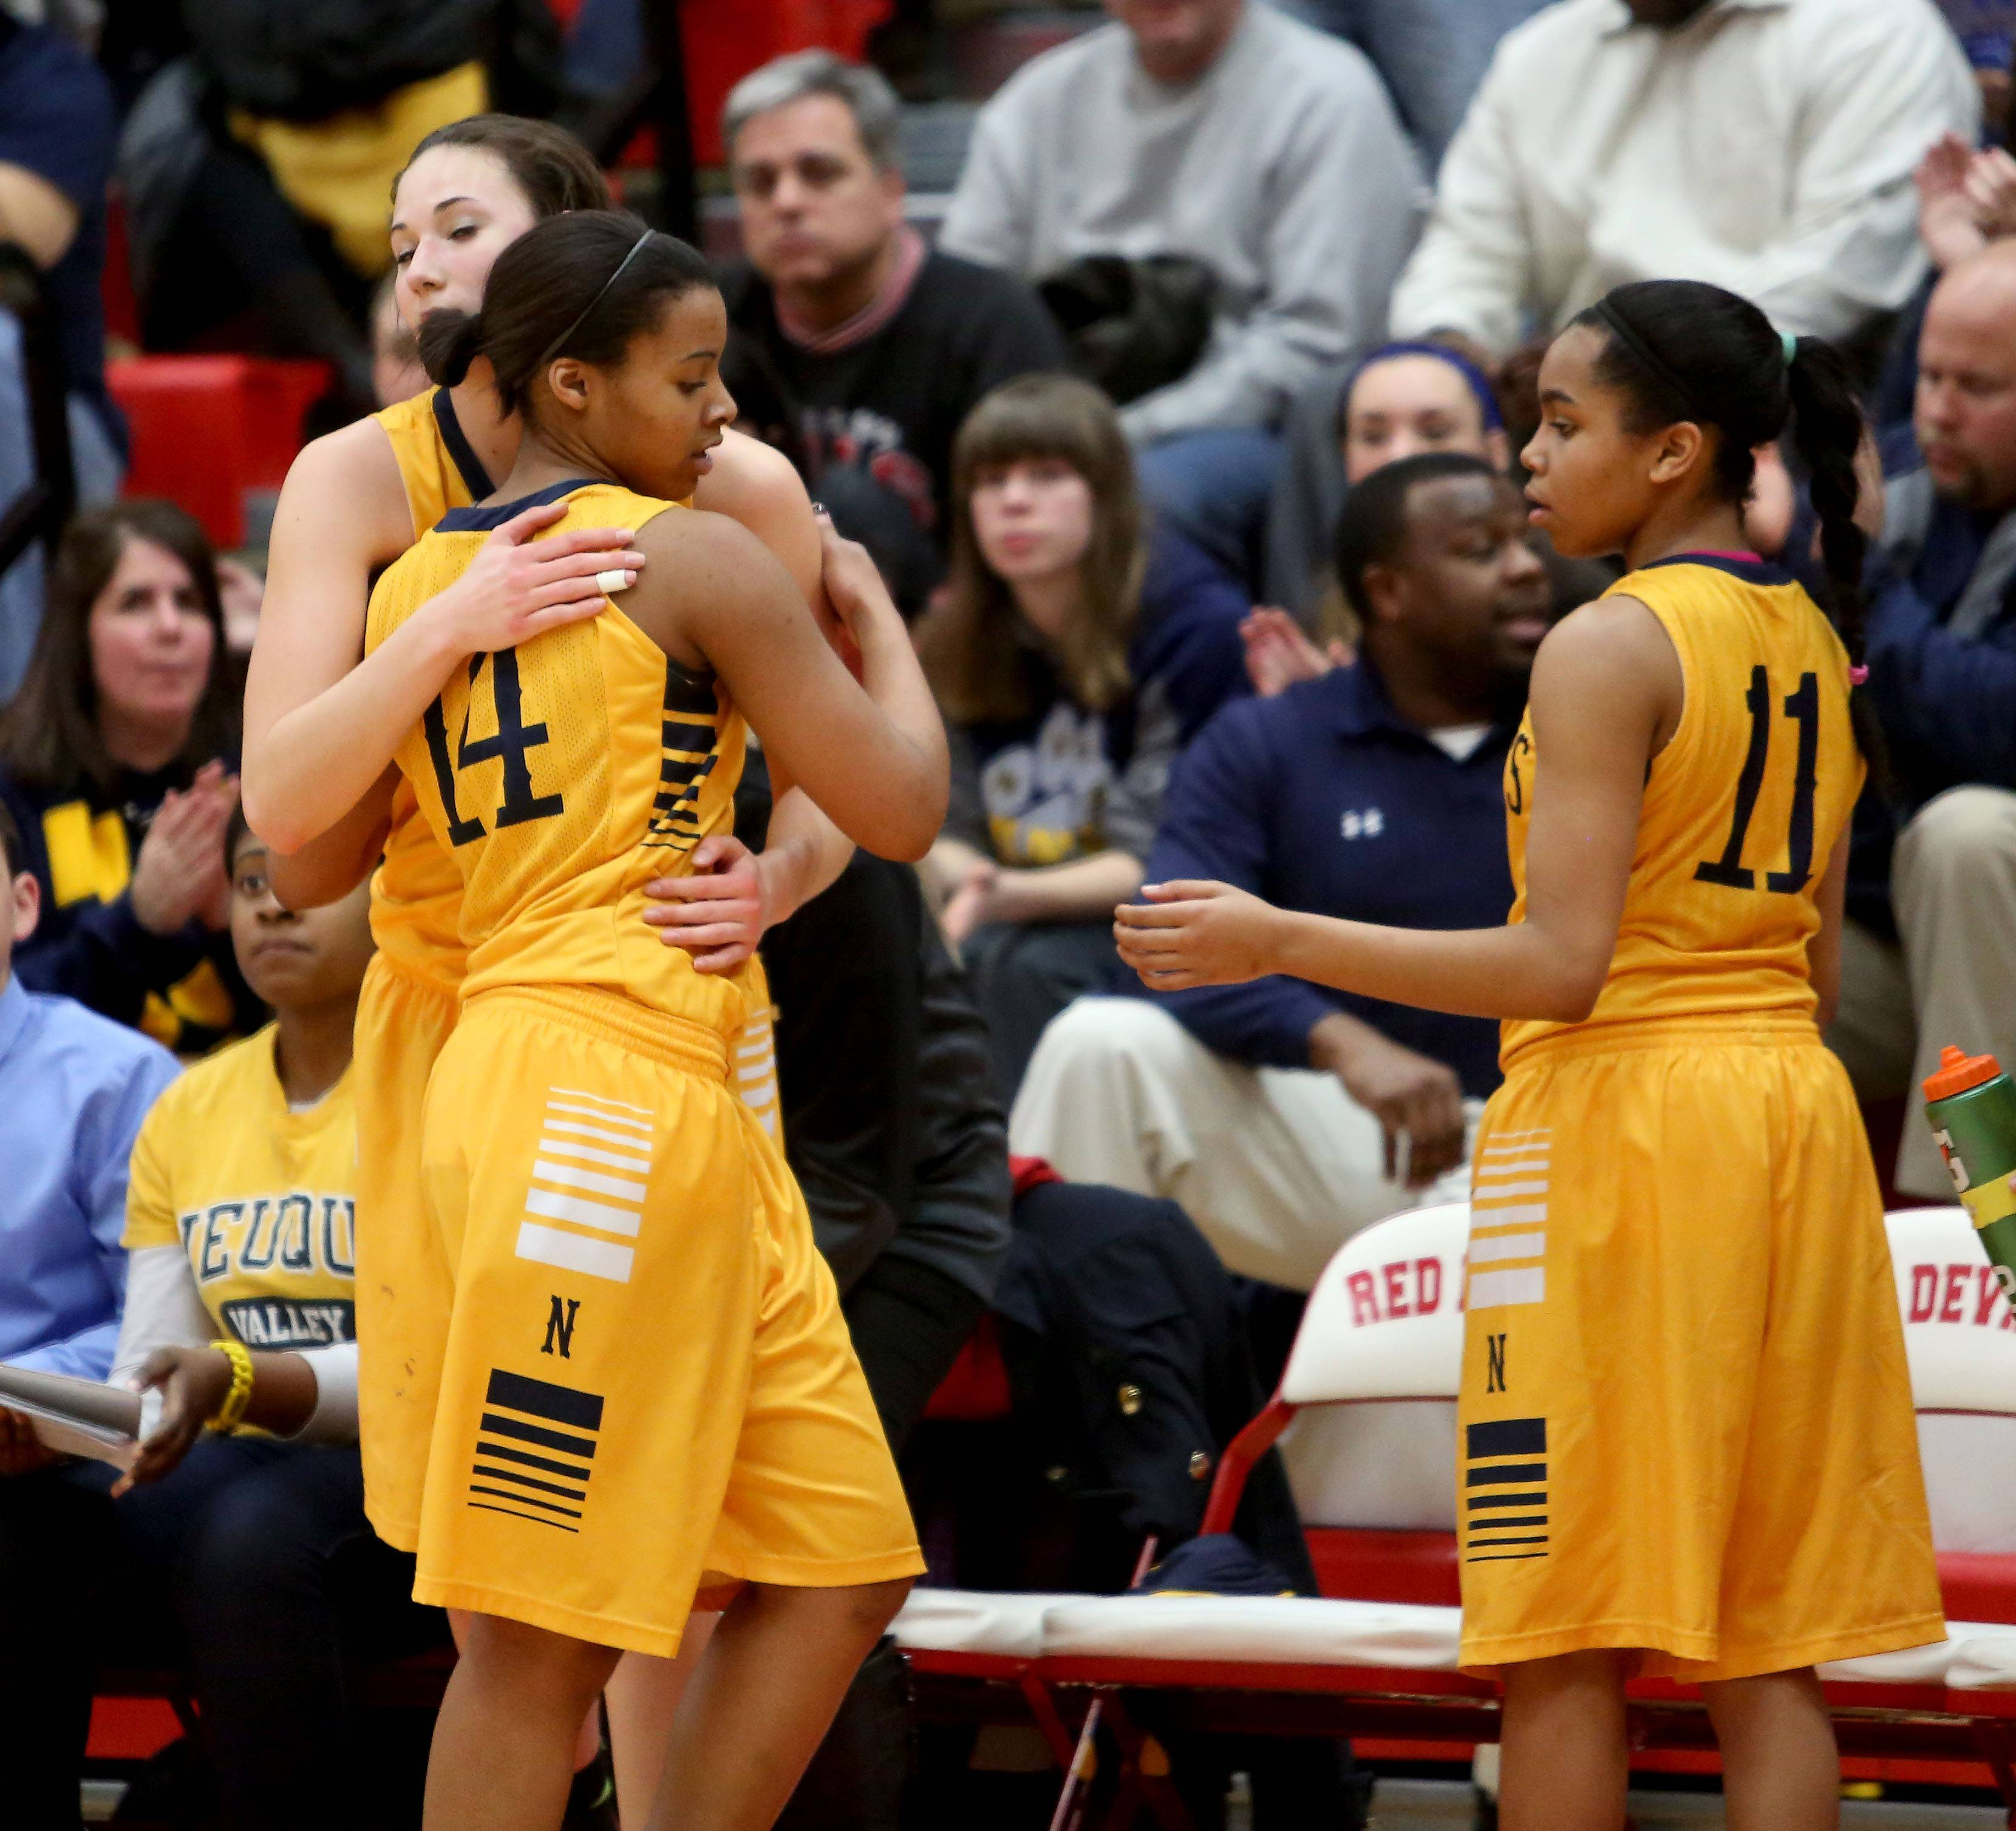 Neuqua Valley's Najee Smith, left, gets a hug from teammates as she comes off the floor.